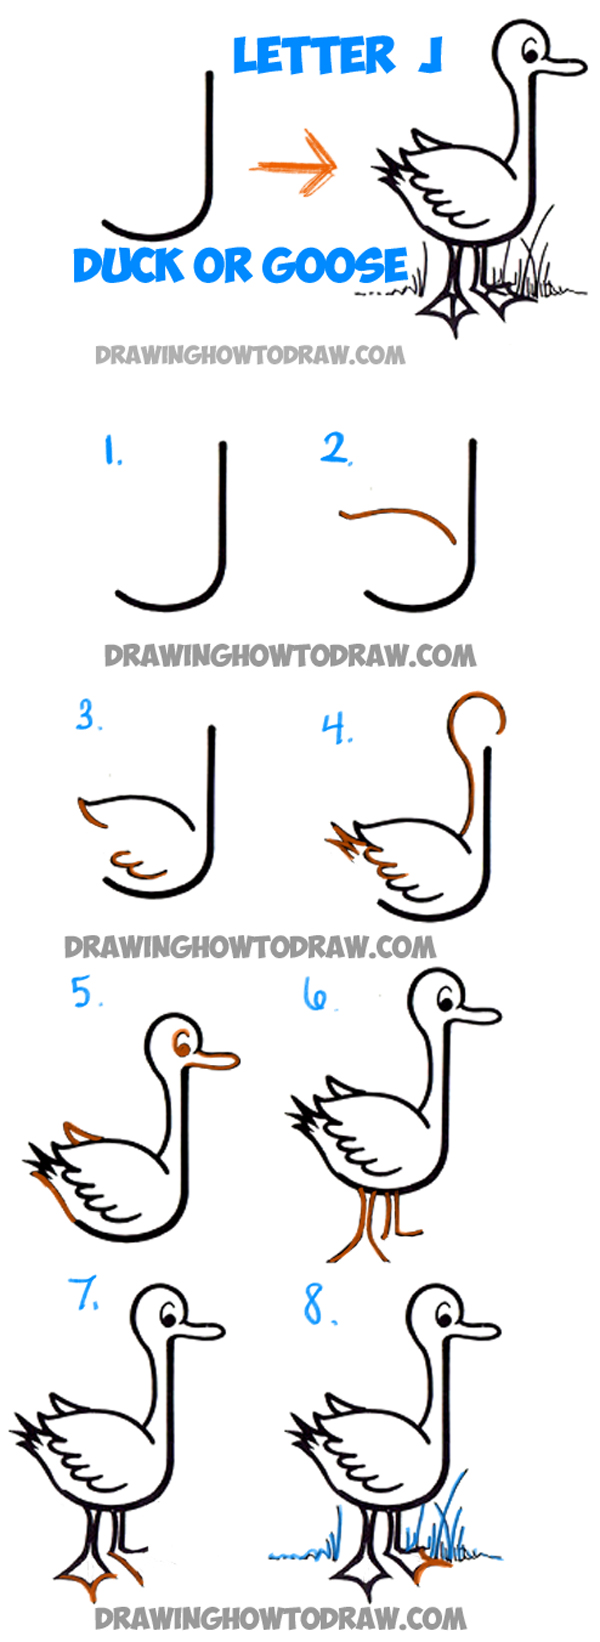 how to draw cartoon goose or duck from letter j shape easy step